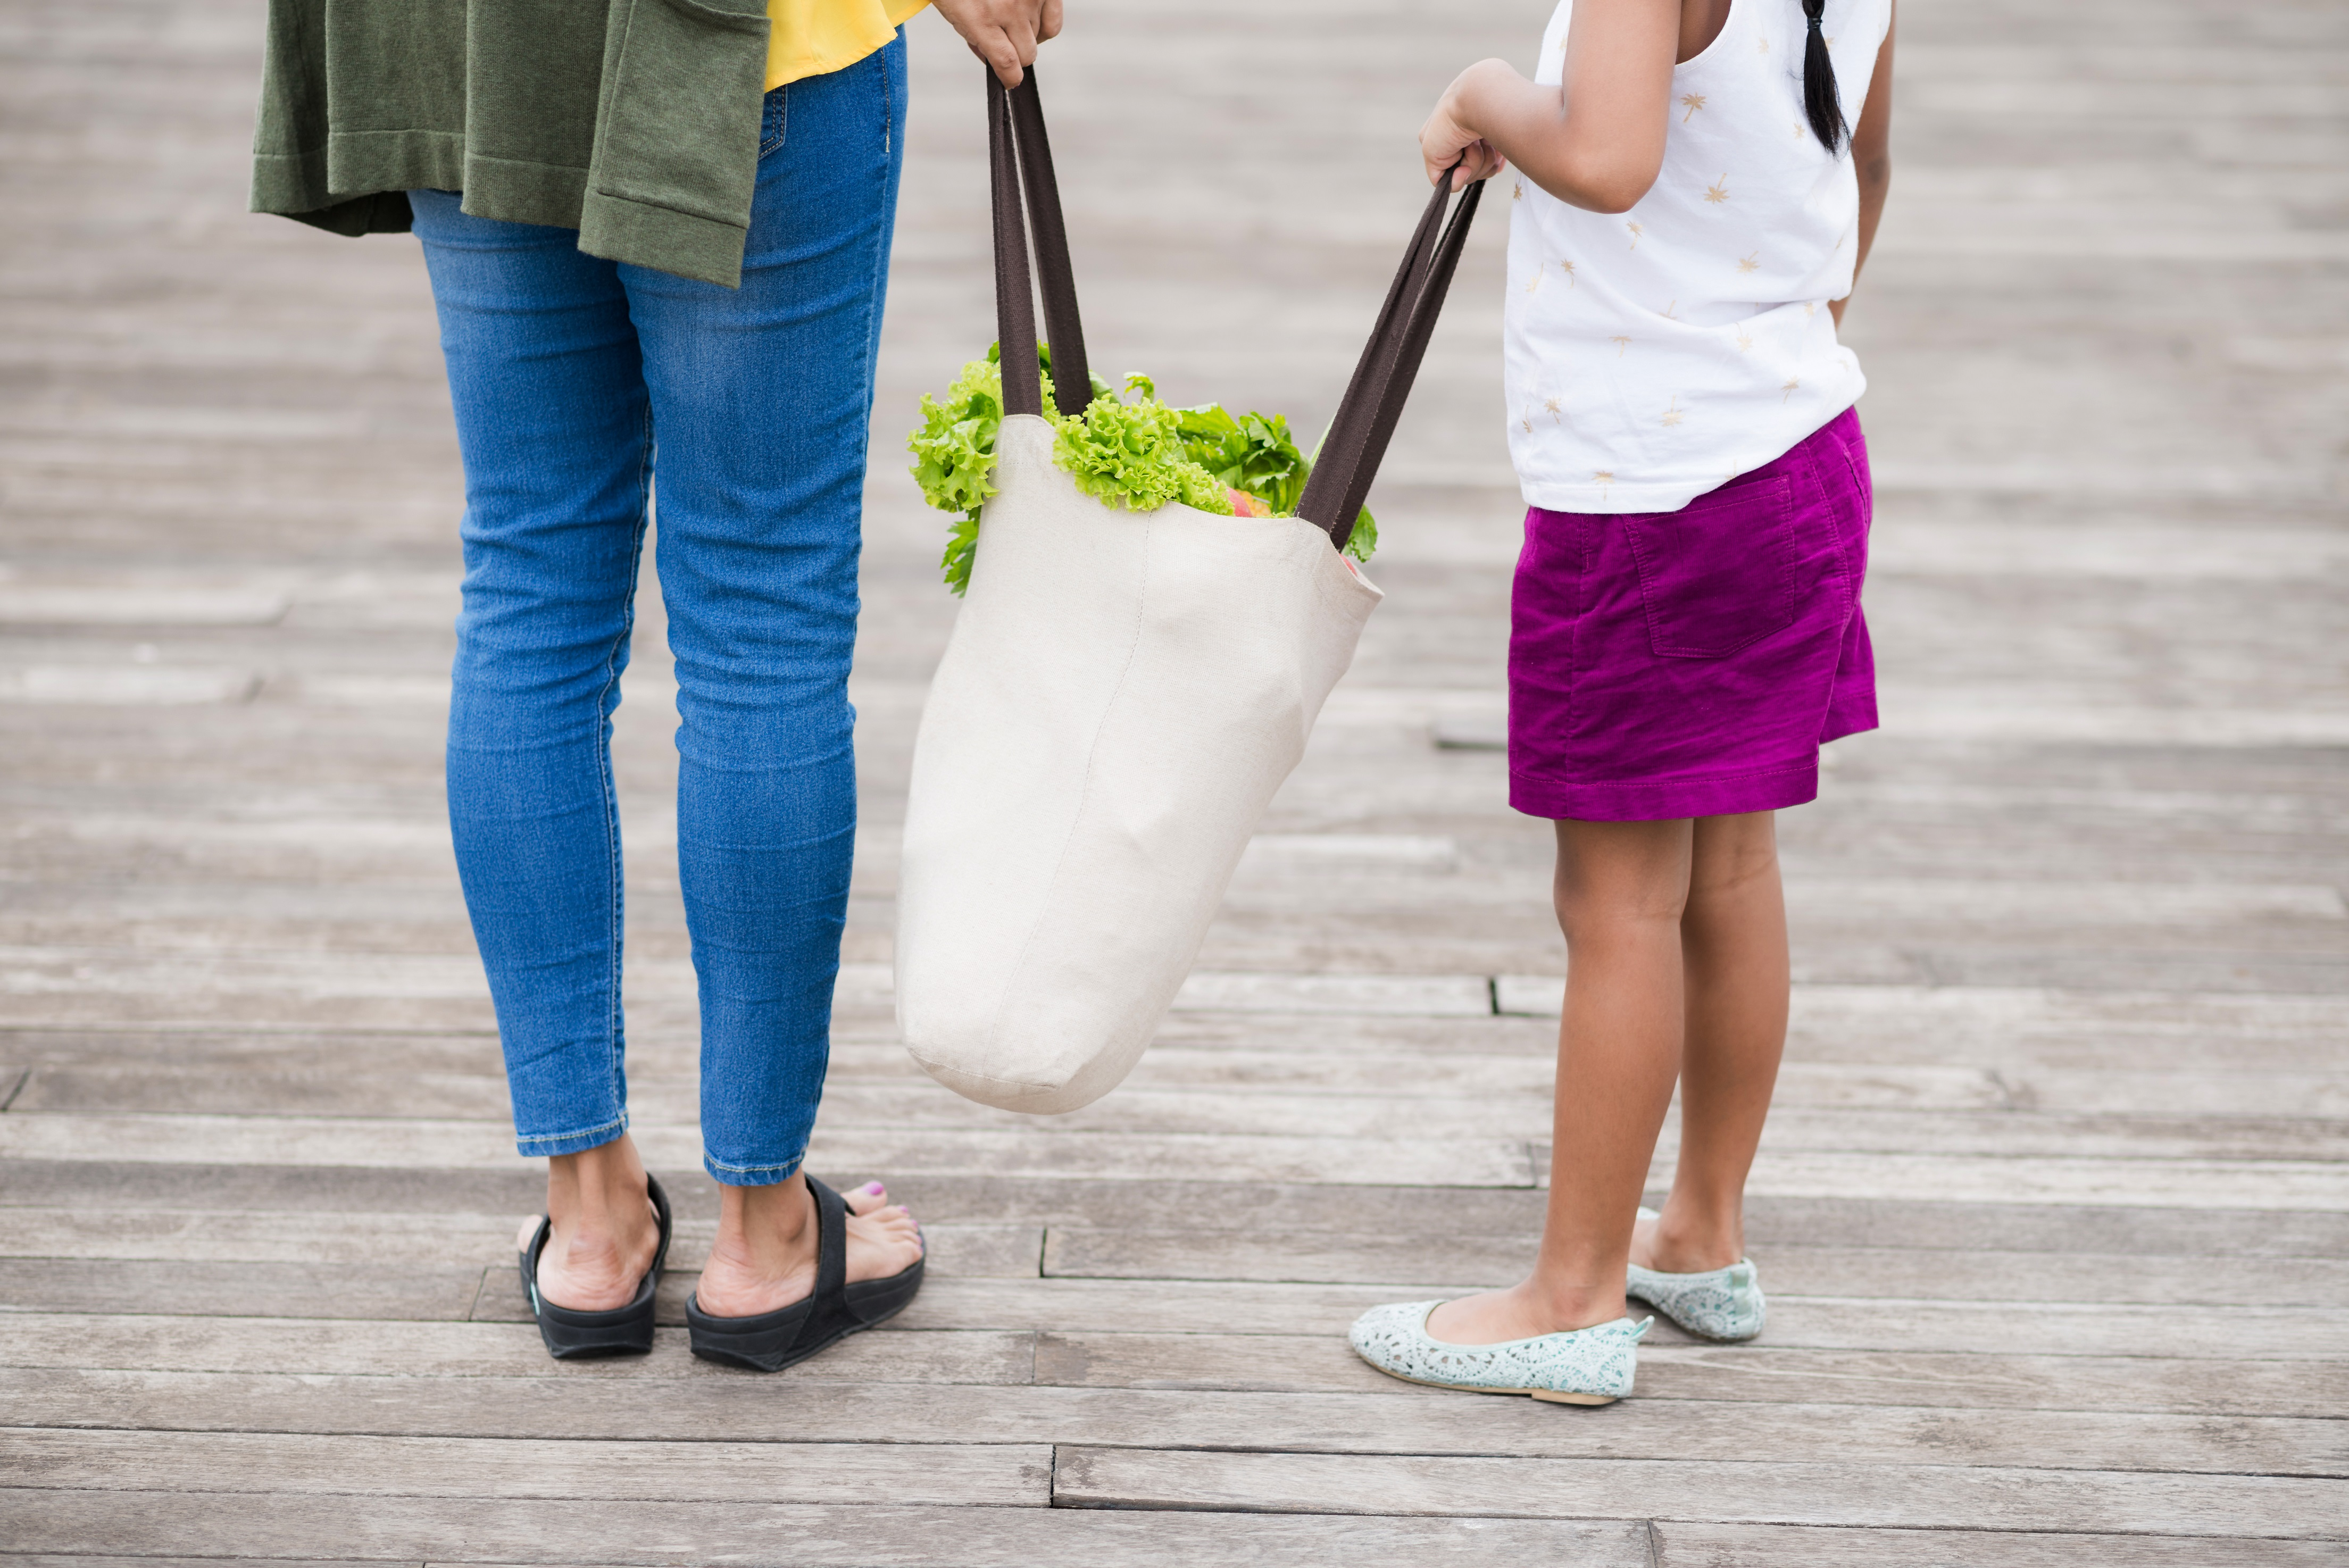 Image of mother and daughter holding a grocery bag with produce.